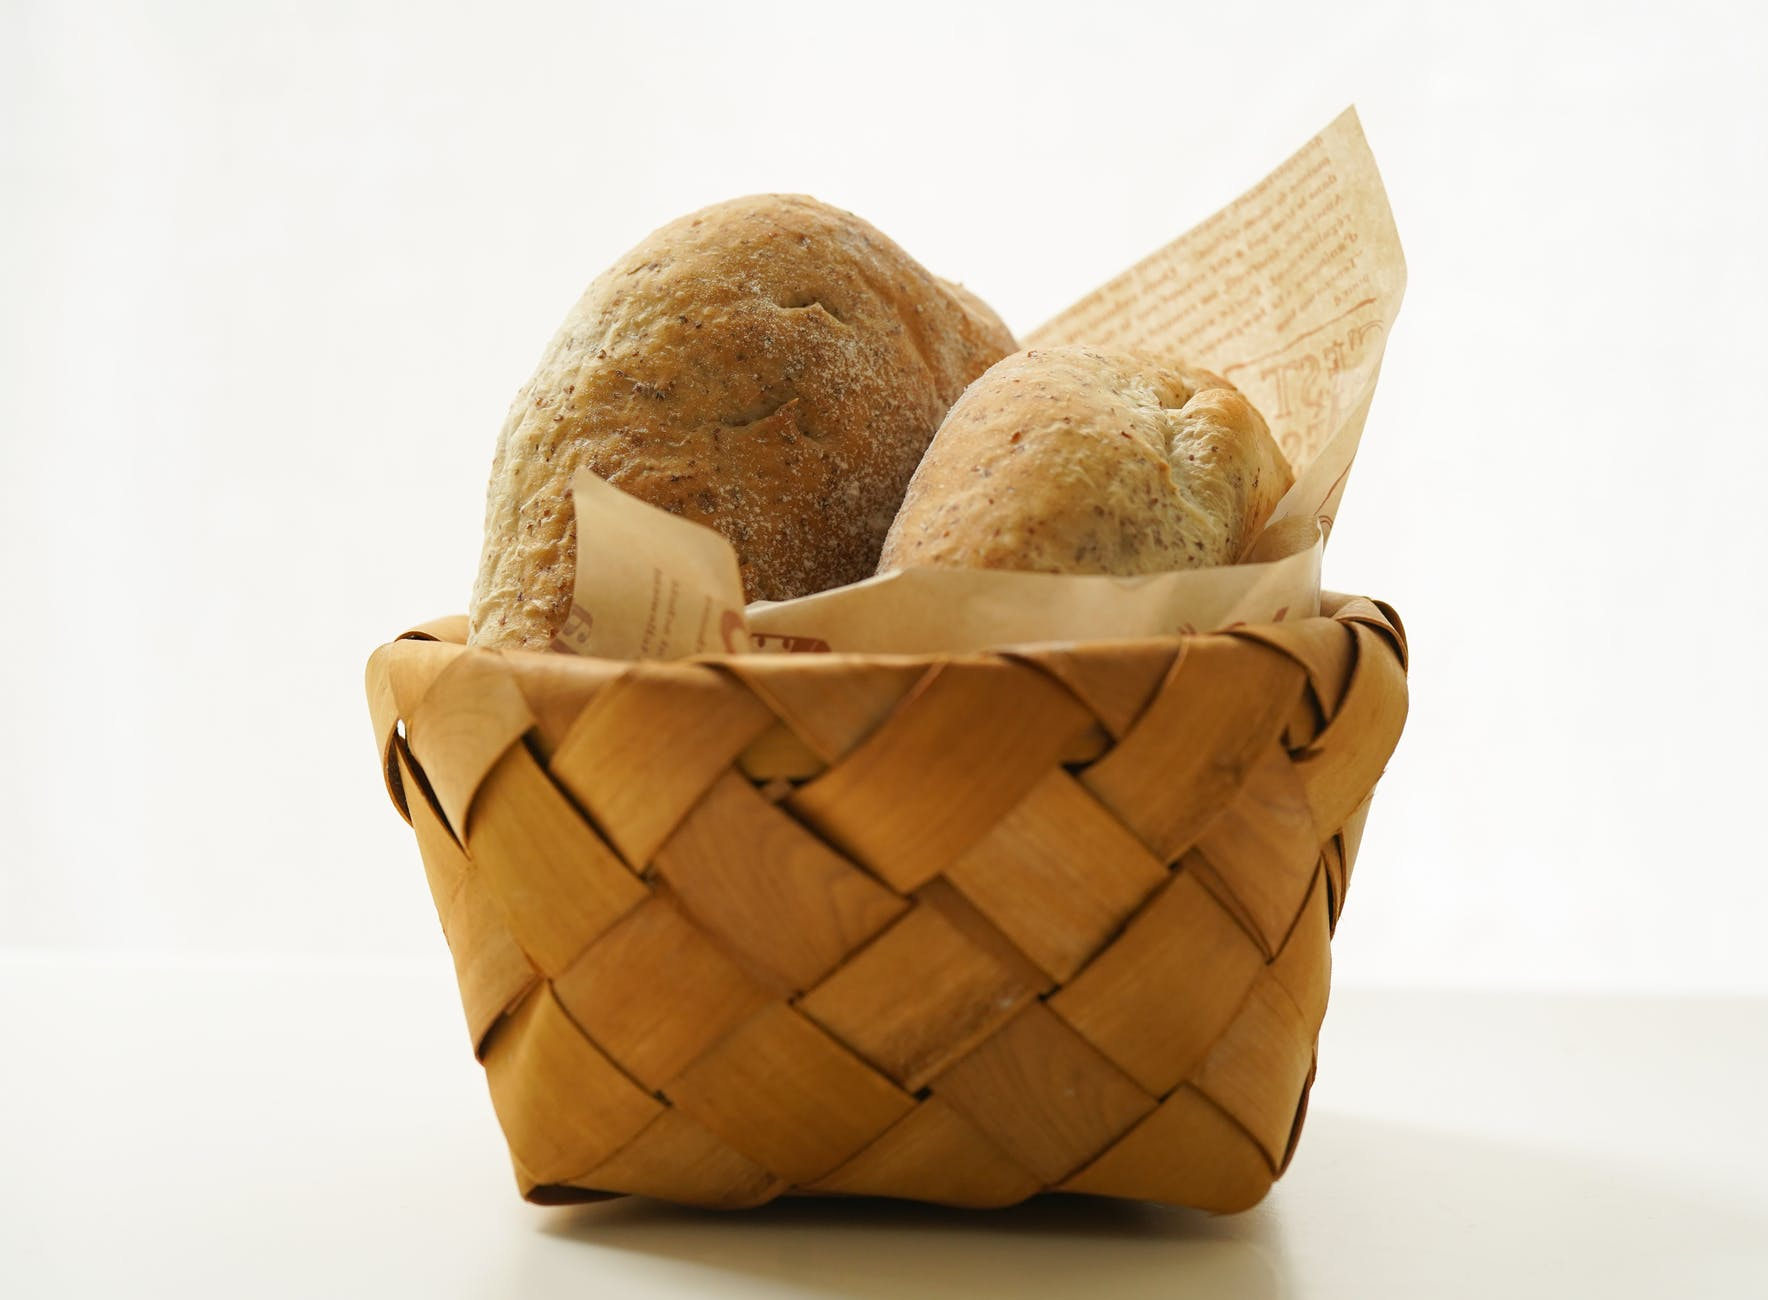 close up photo of baked bread platter